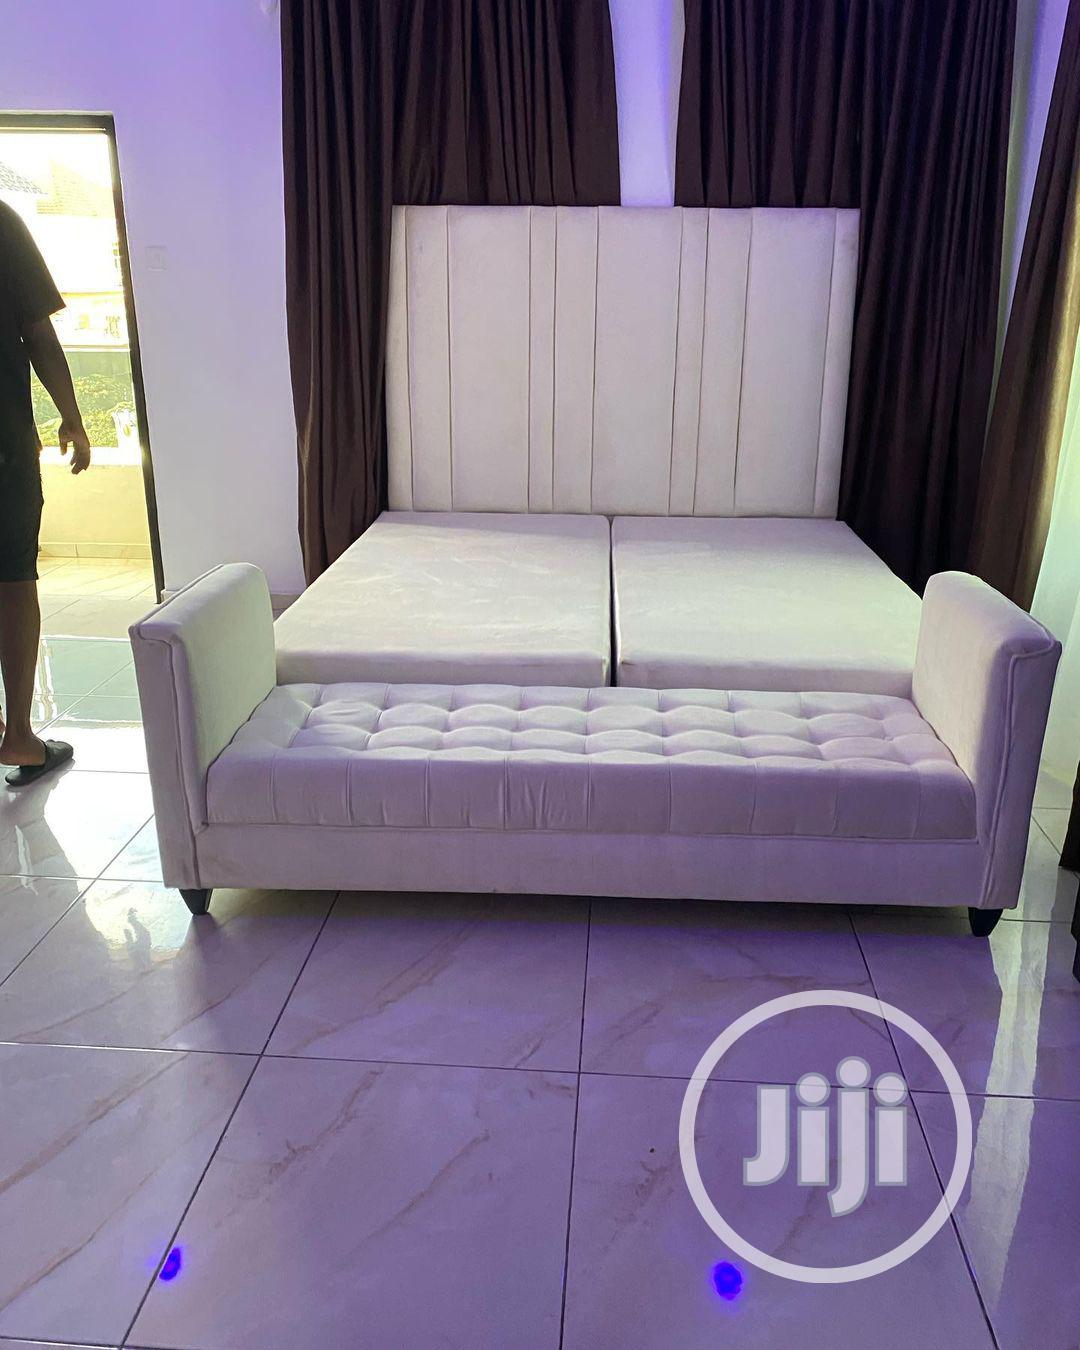 6 by 6 Bed With Ottoman Chair. | Furniture for sale in Lekki, Lagos State, Nigeria